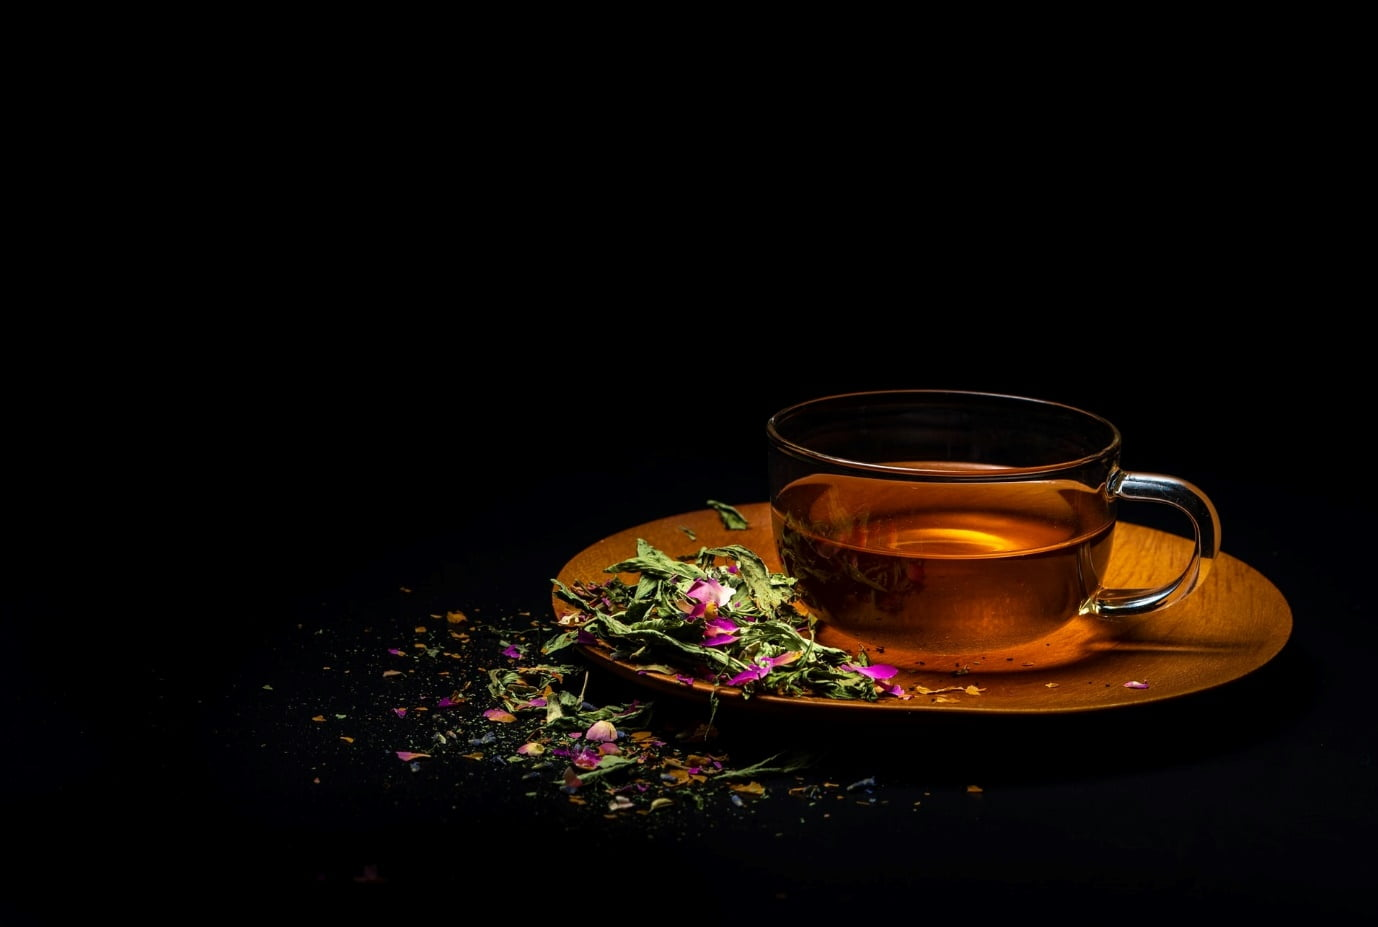 Tea cup with leaves on black background